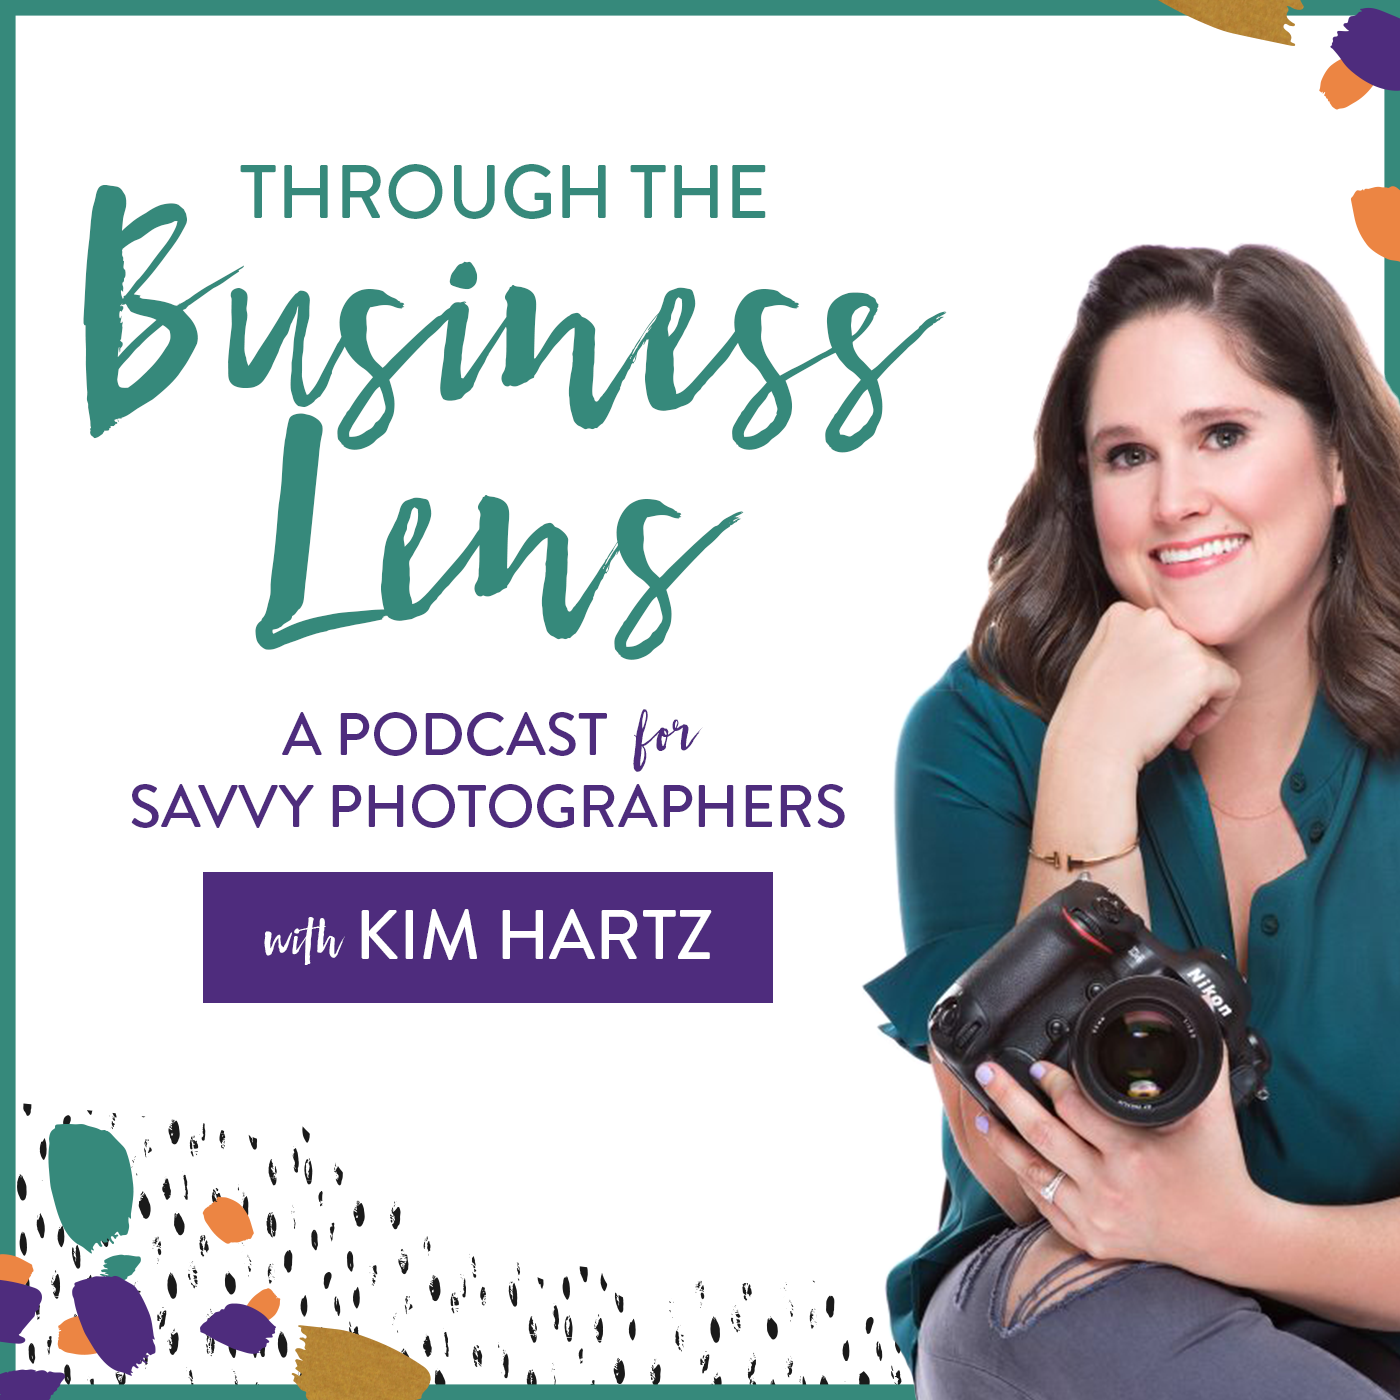 Through the Business Lens: a podcast for savvy photographers show art